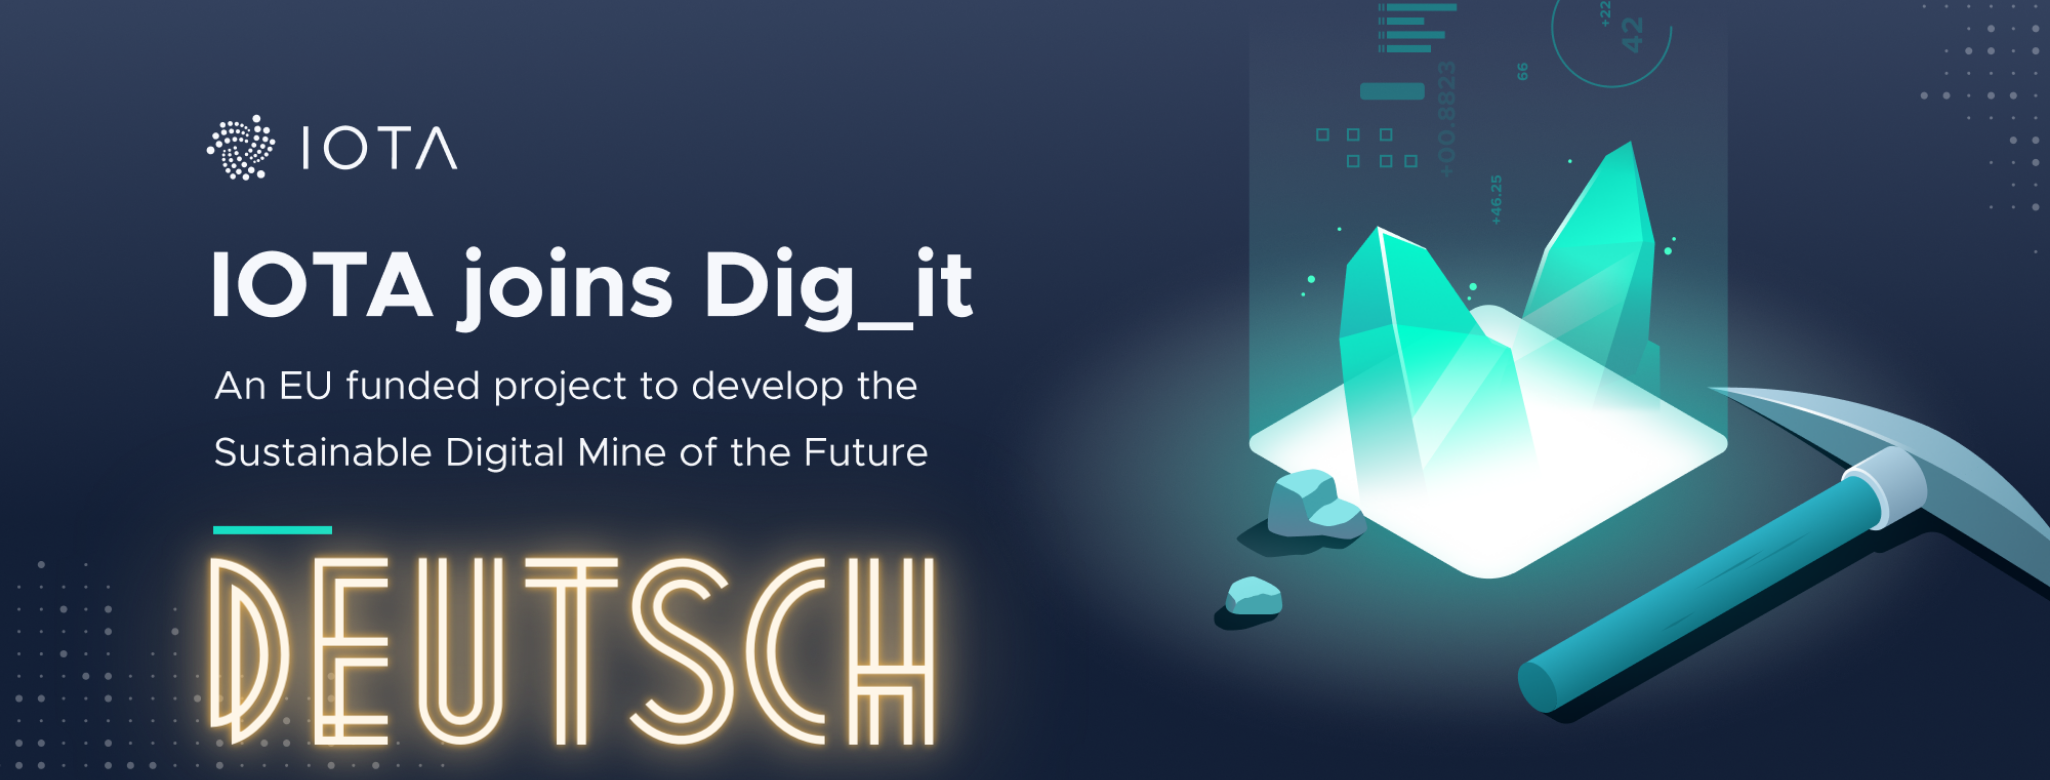 dig_it partner iota deutsch